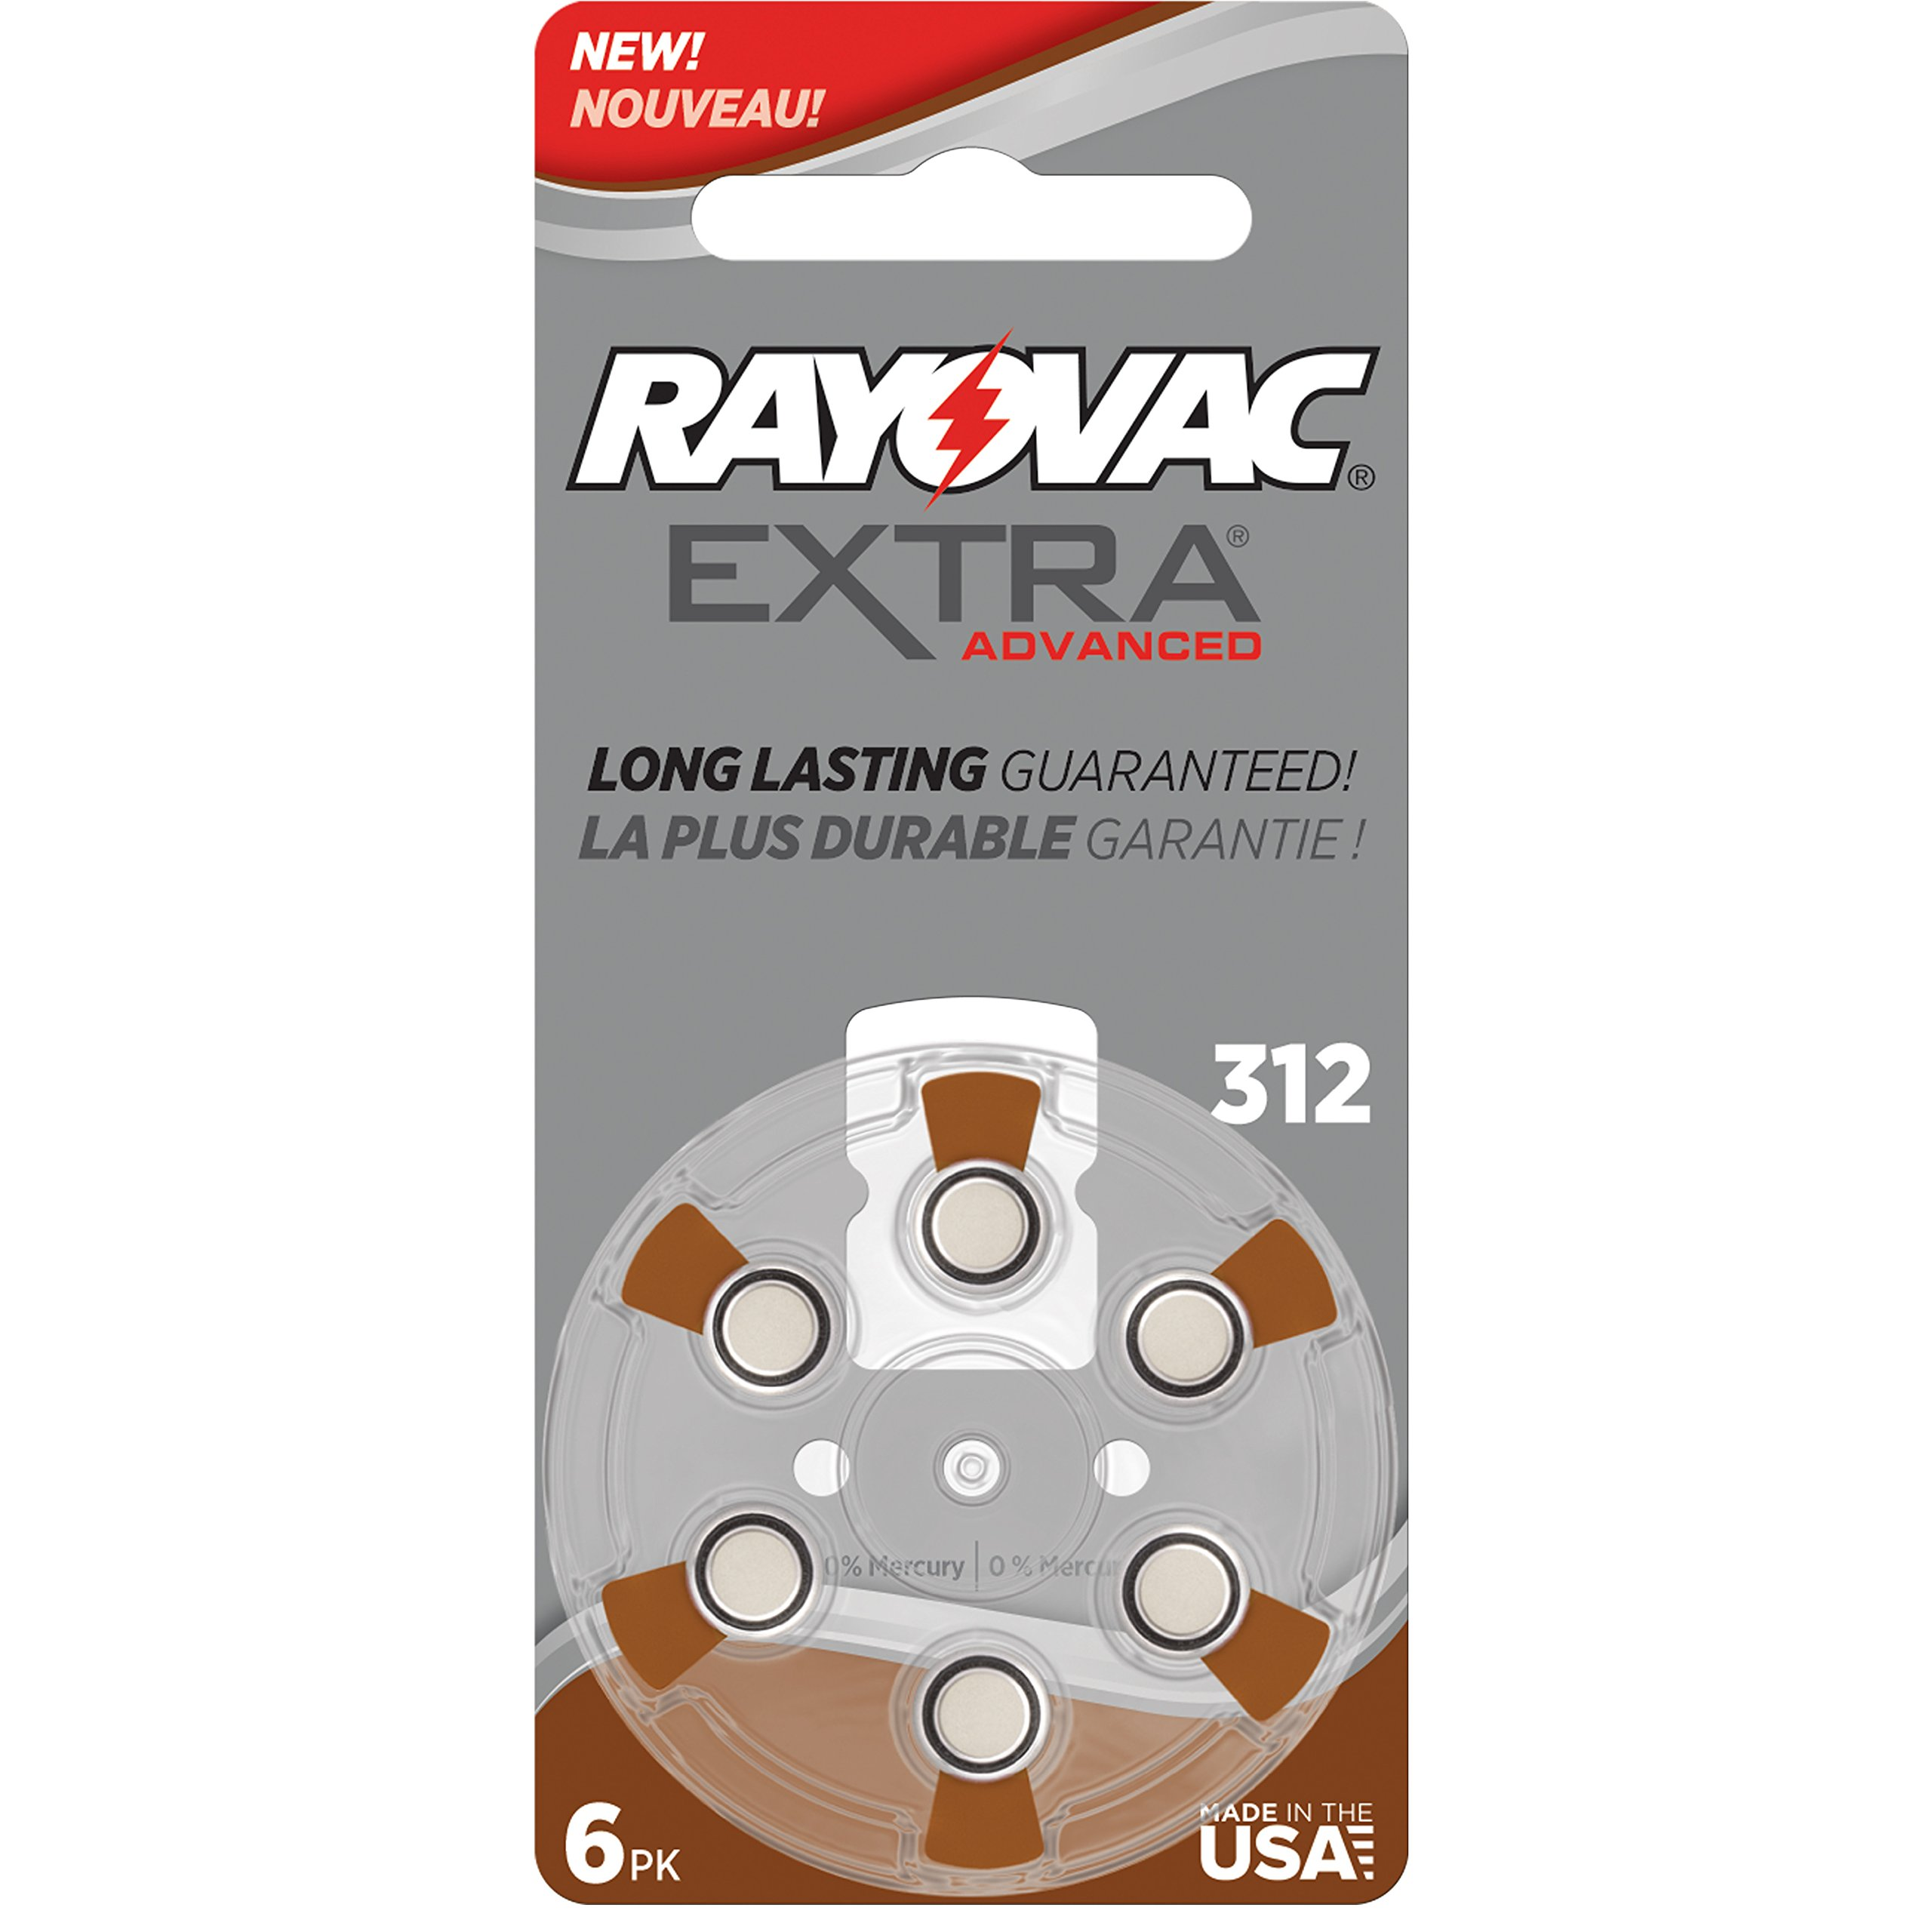 Rayovac Extra Advanced Mercury Free Hearing Aid Batteries Size 312 + Battery Holder Keychain Kit (40 Batteries)